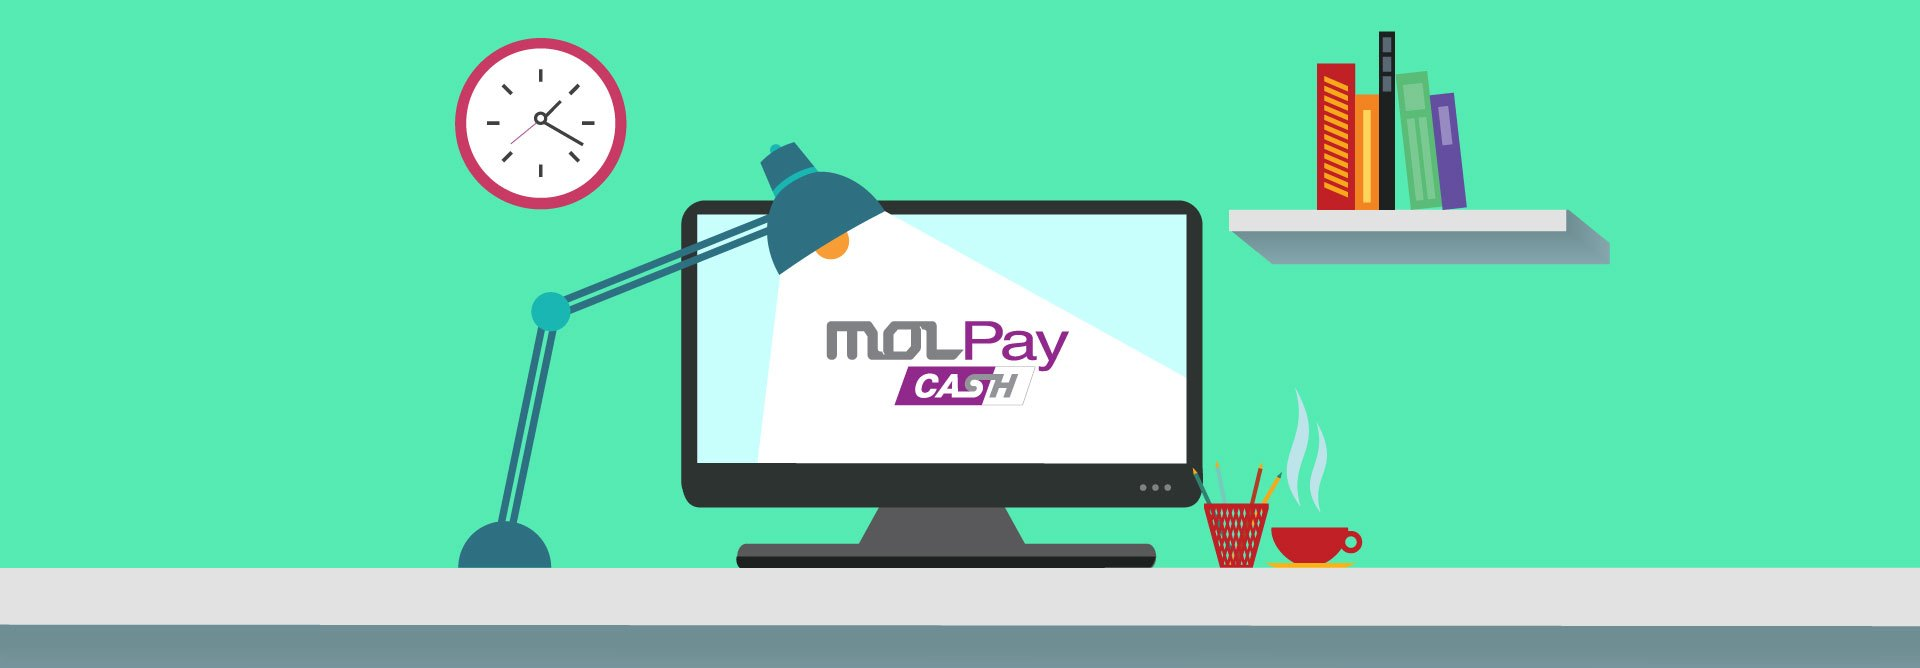 How does MOLPay CASH help during uncertain times?